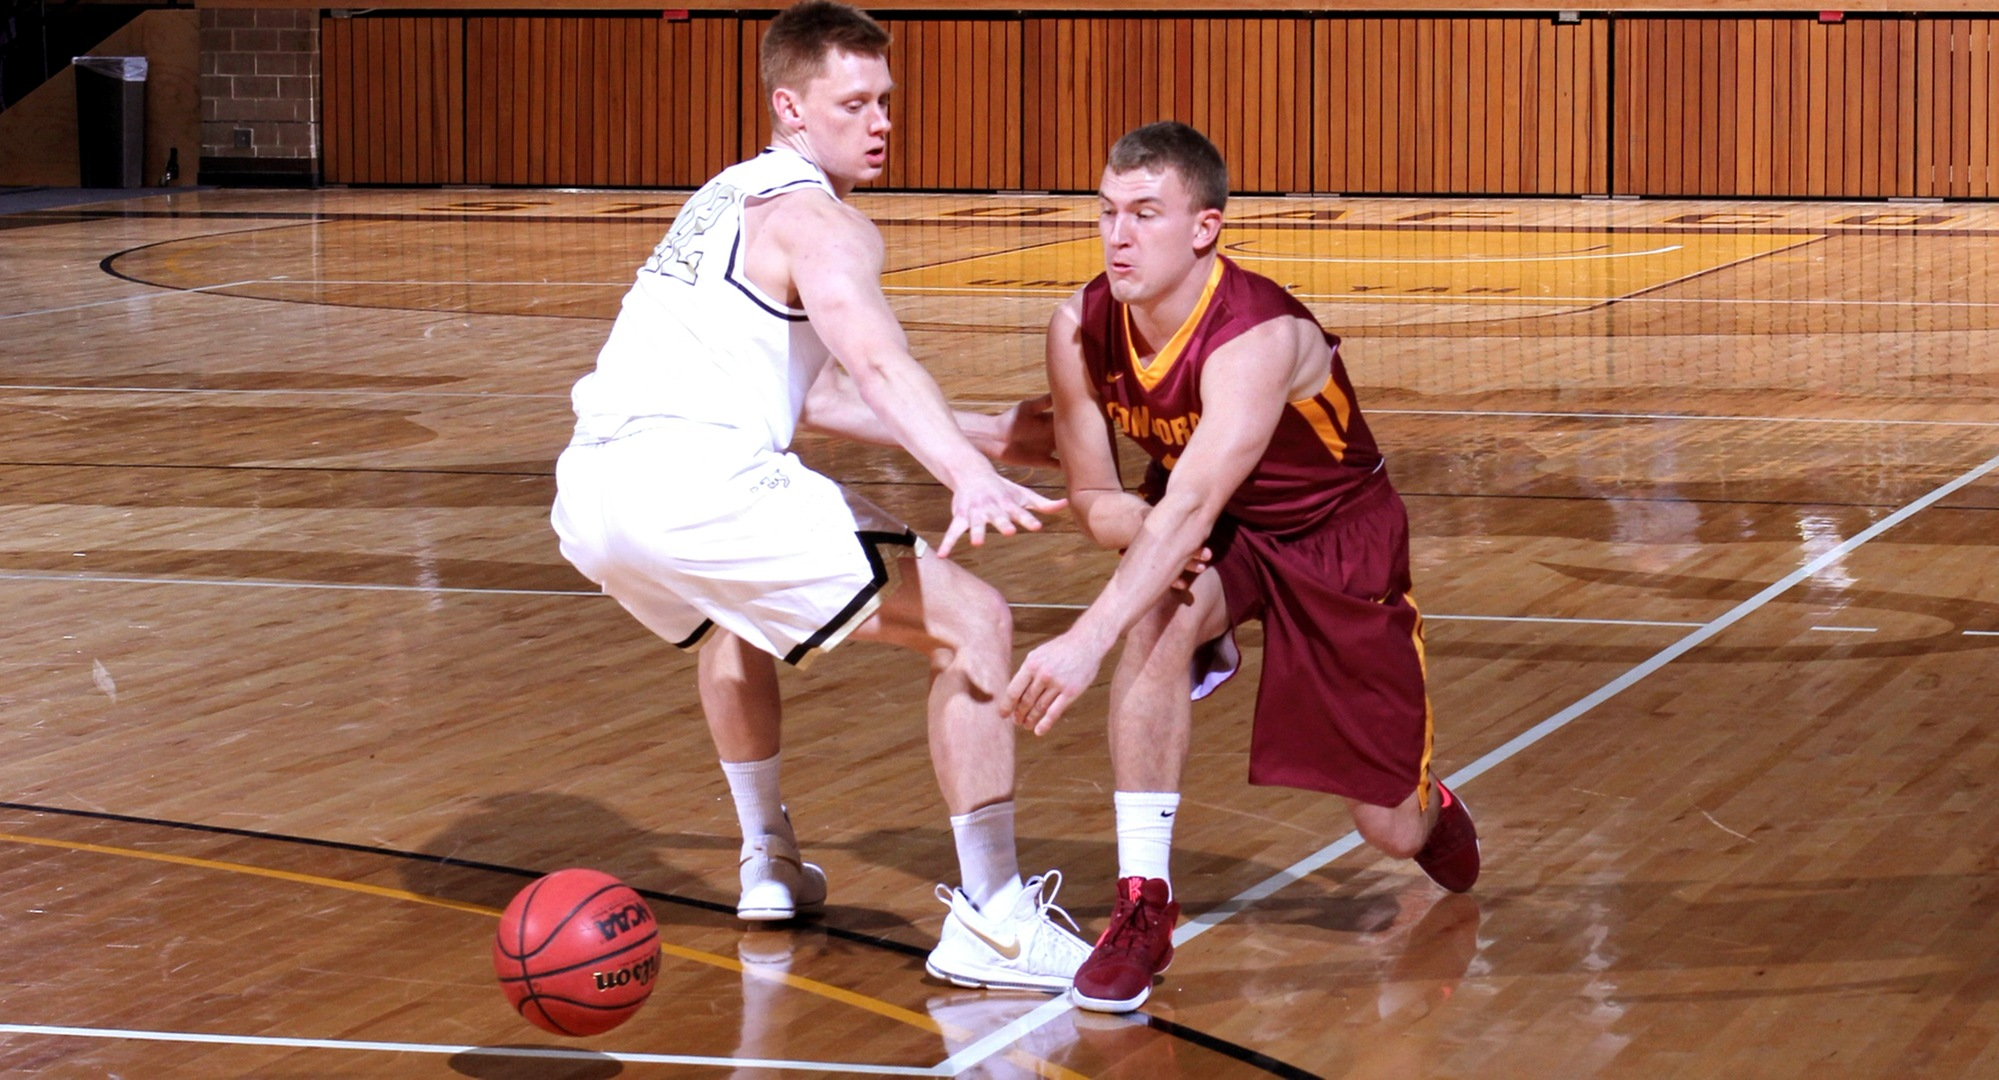 Junior Austin Rund makes an entry pass to the post during the Cobbers' game at St. Olaf. (Photo courtesy of St. Olaf Sports Information Department)